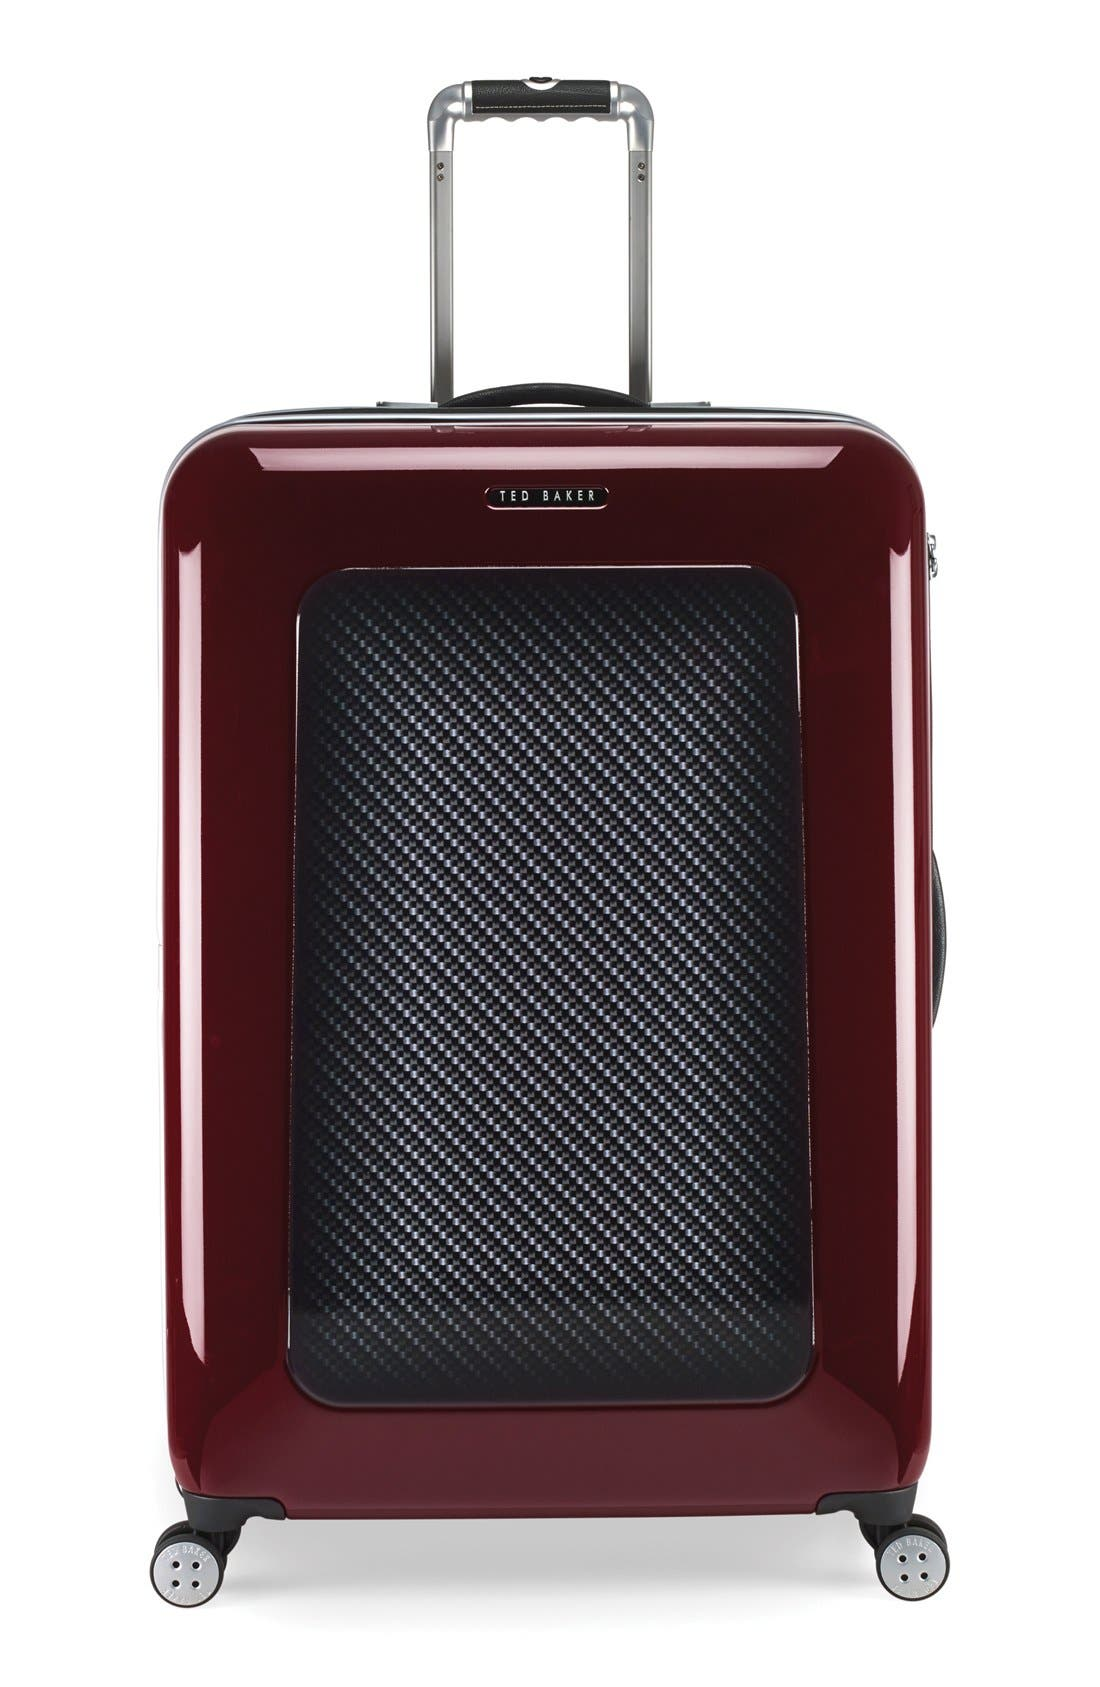 Ted Baker London 'Large Burgundy' Four Wheel Suitcase (31 Inch)